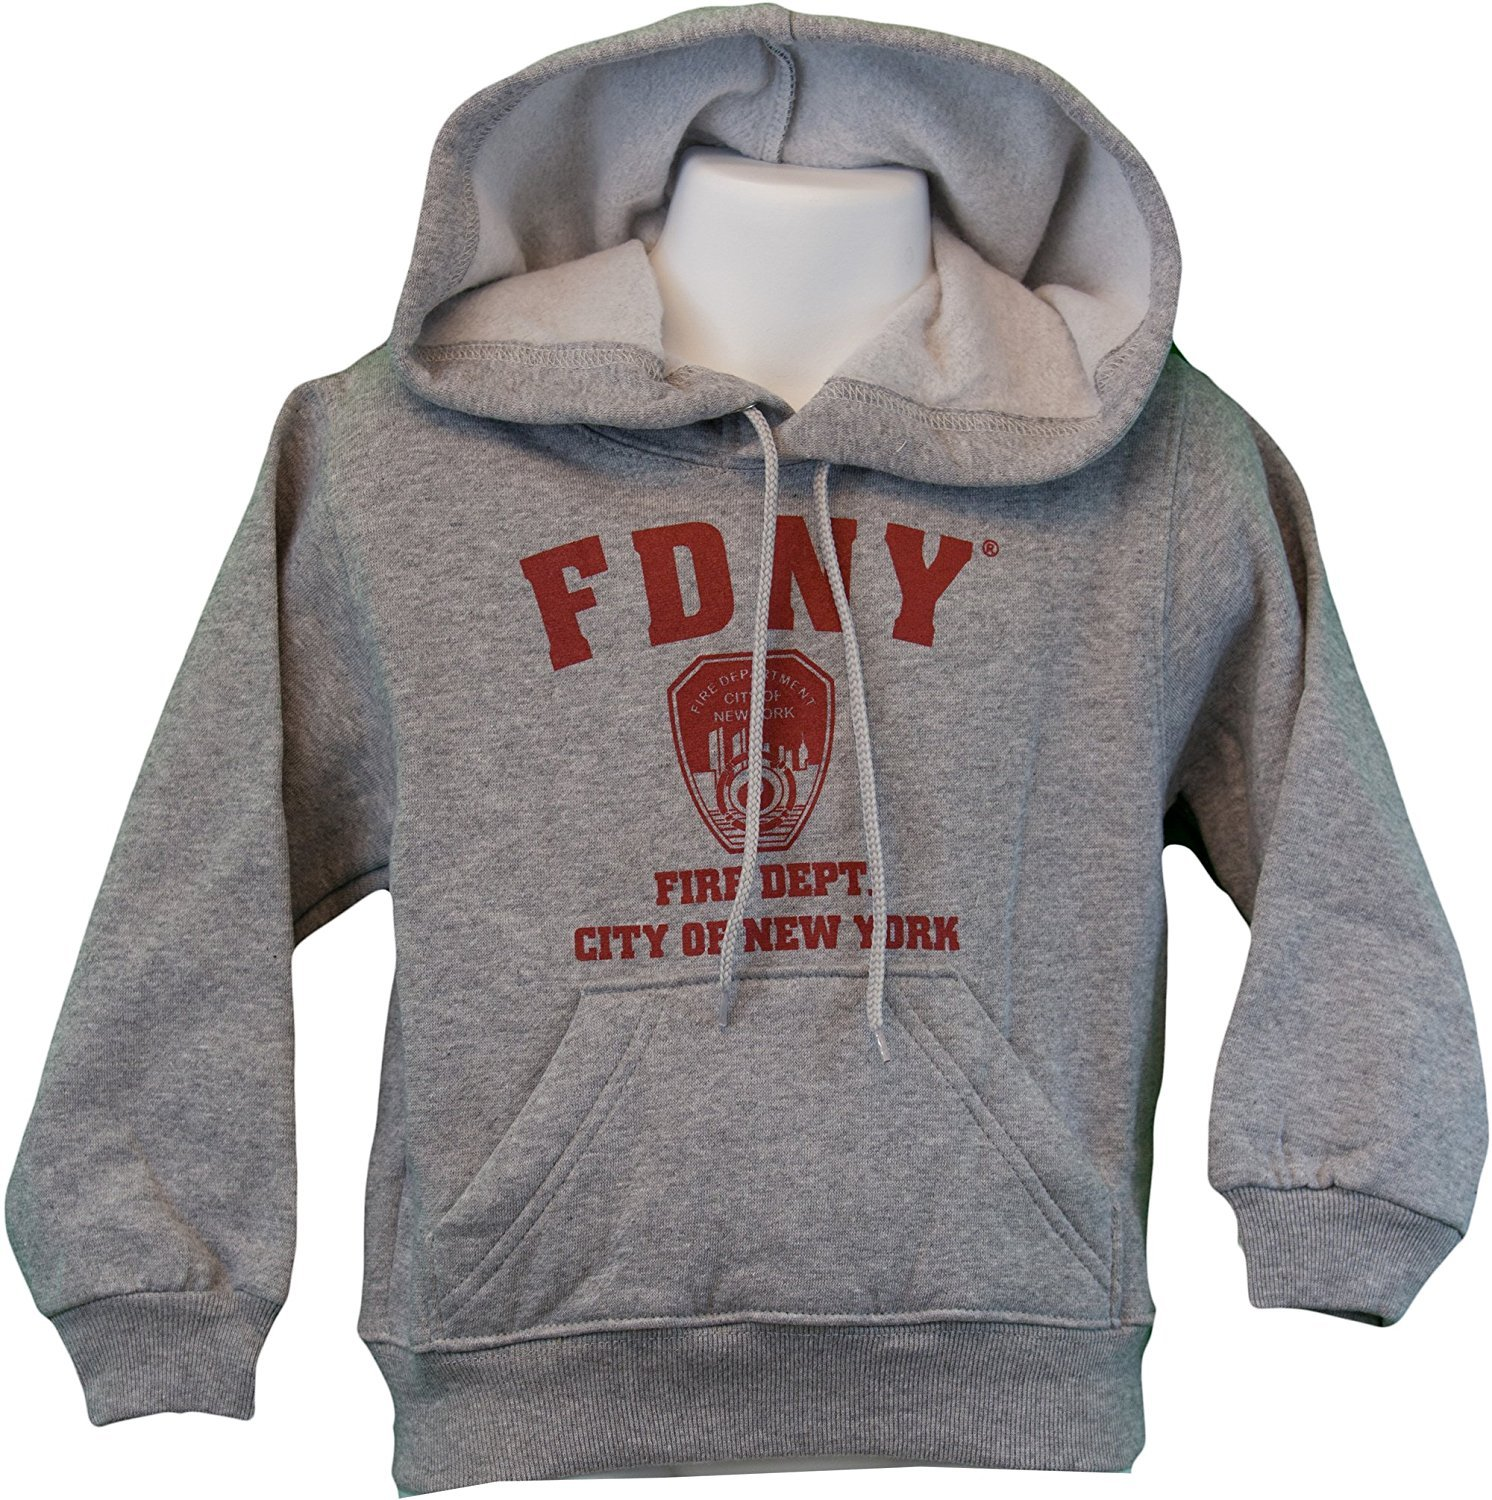 Fdny Sweatshirt Images - Reverse Search